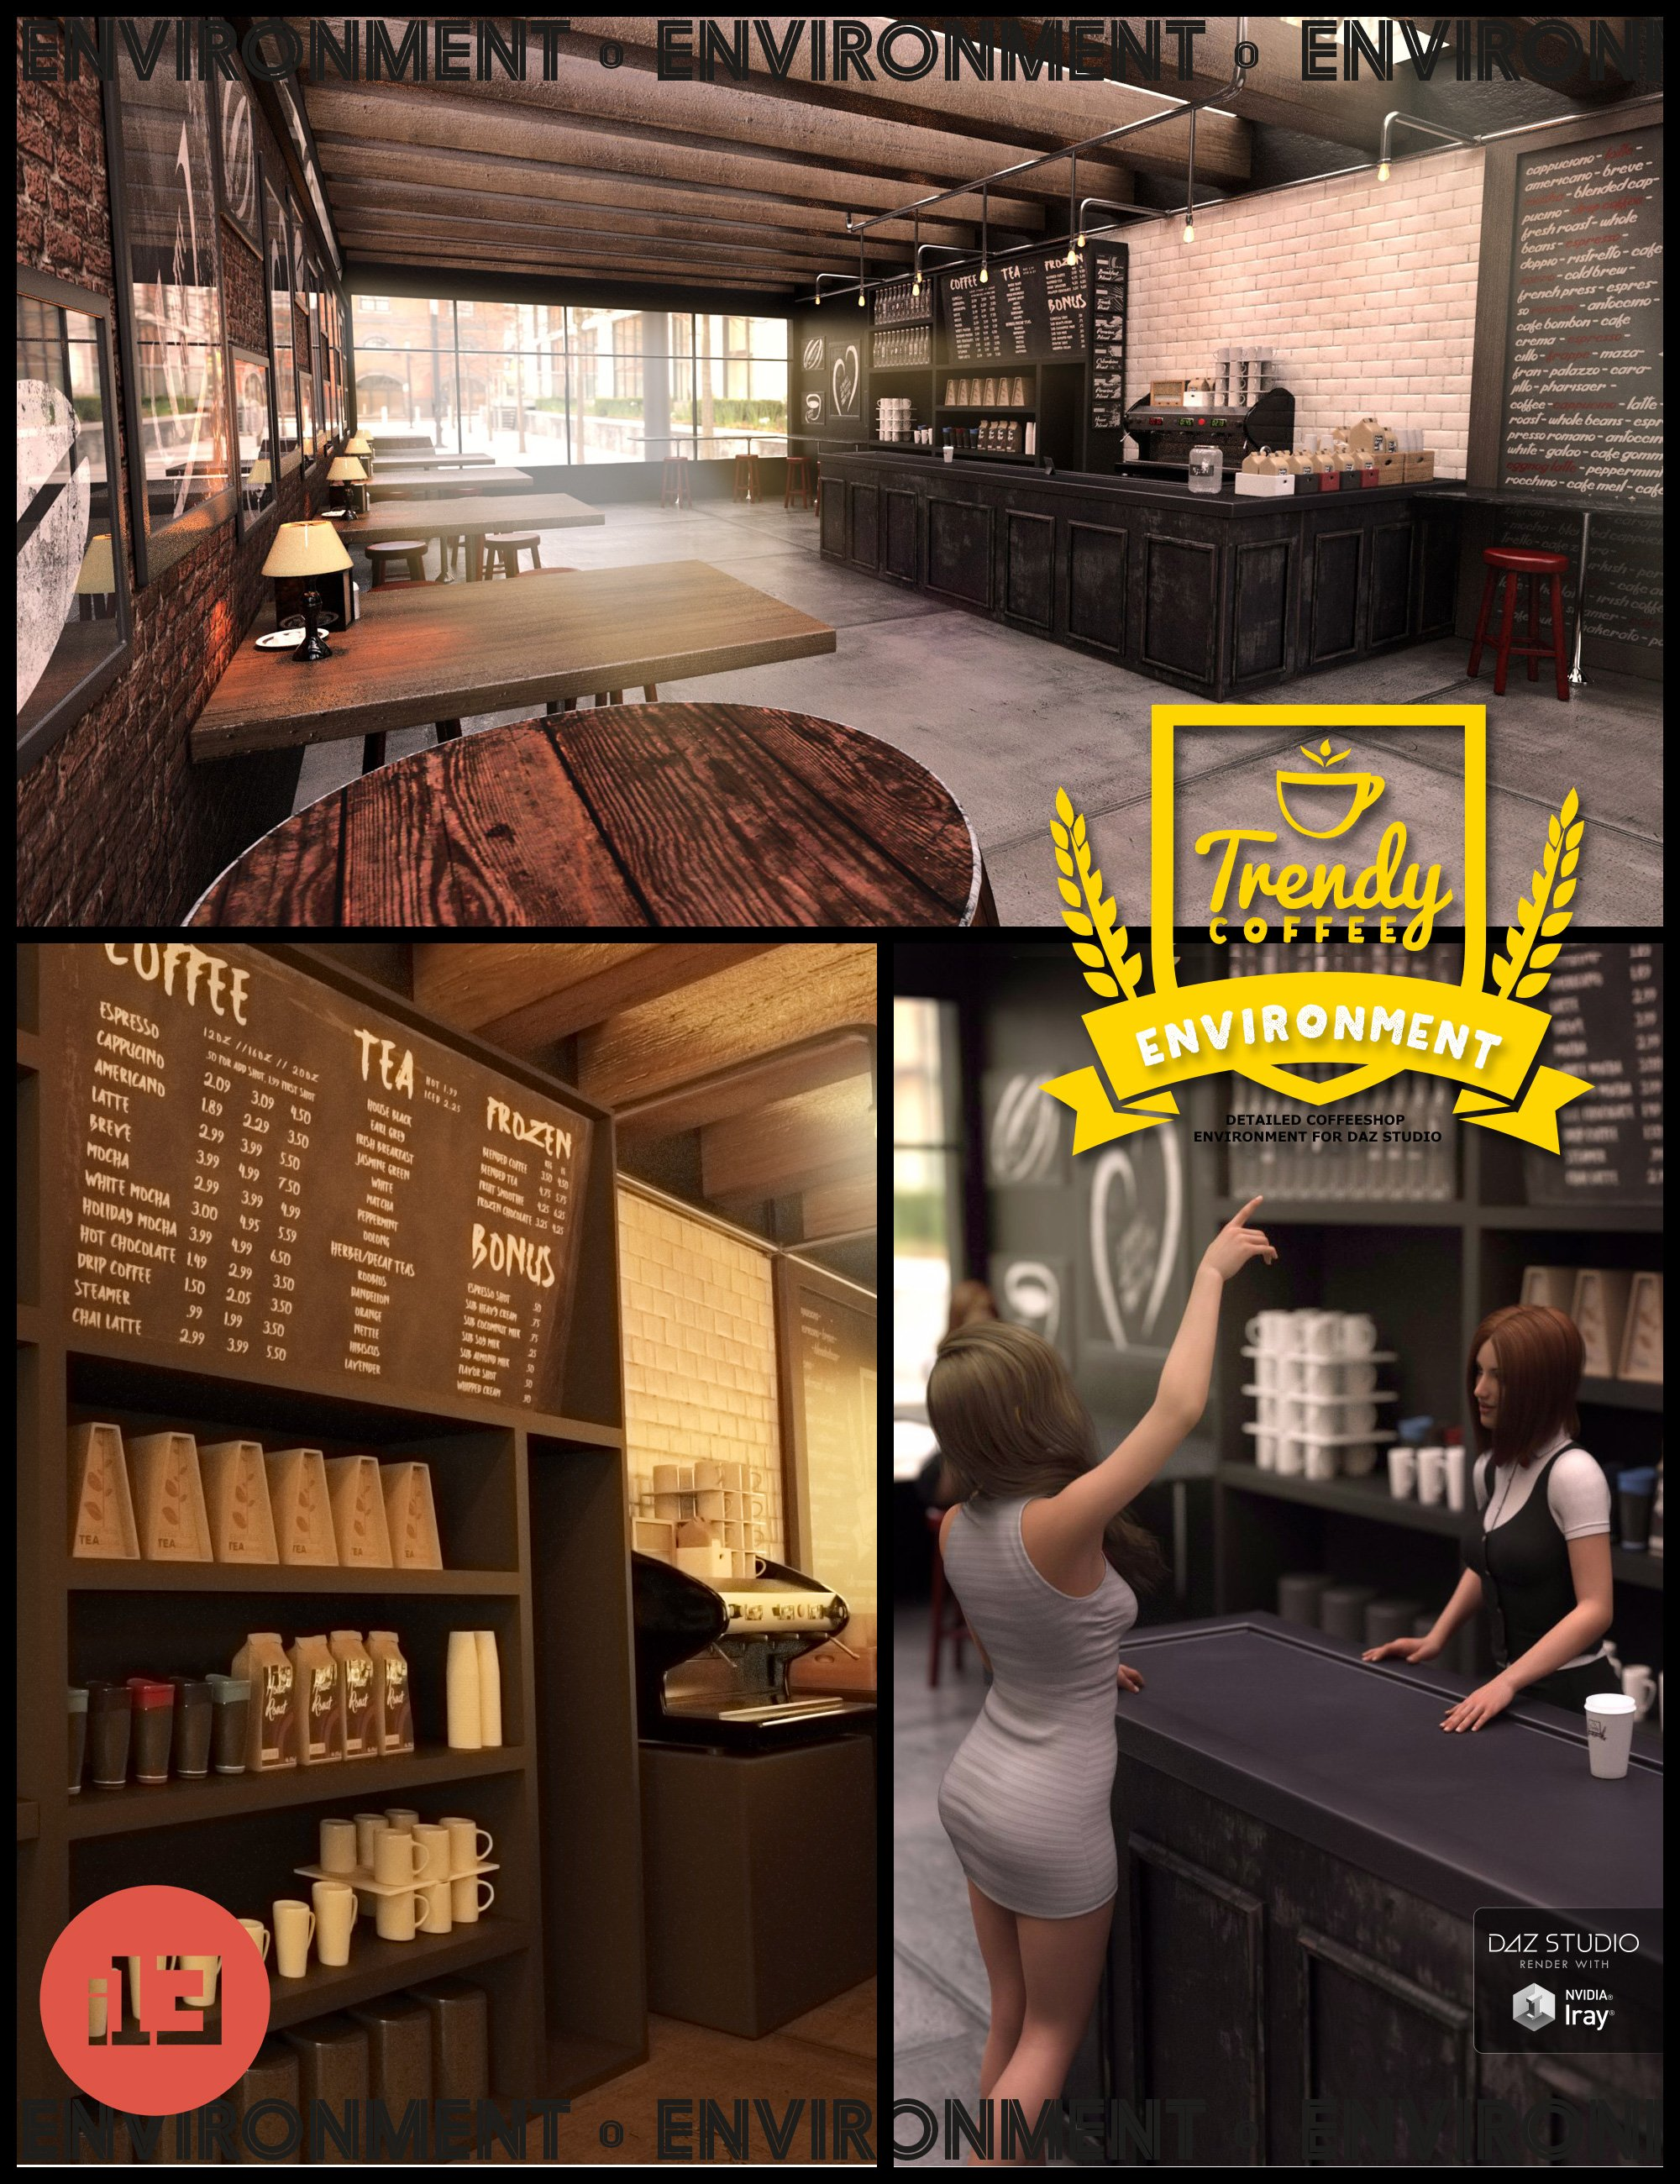 i13 Trendy Coffee Shop Environment by: ironman13, 3D Models by Daz 3D